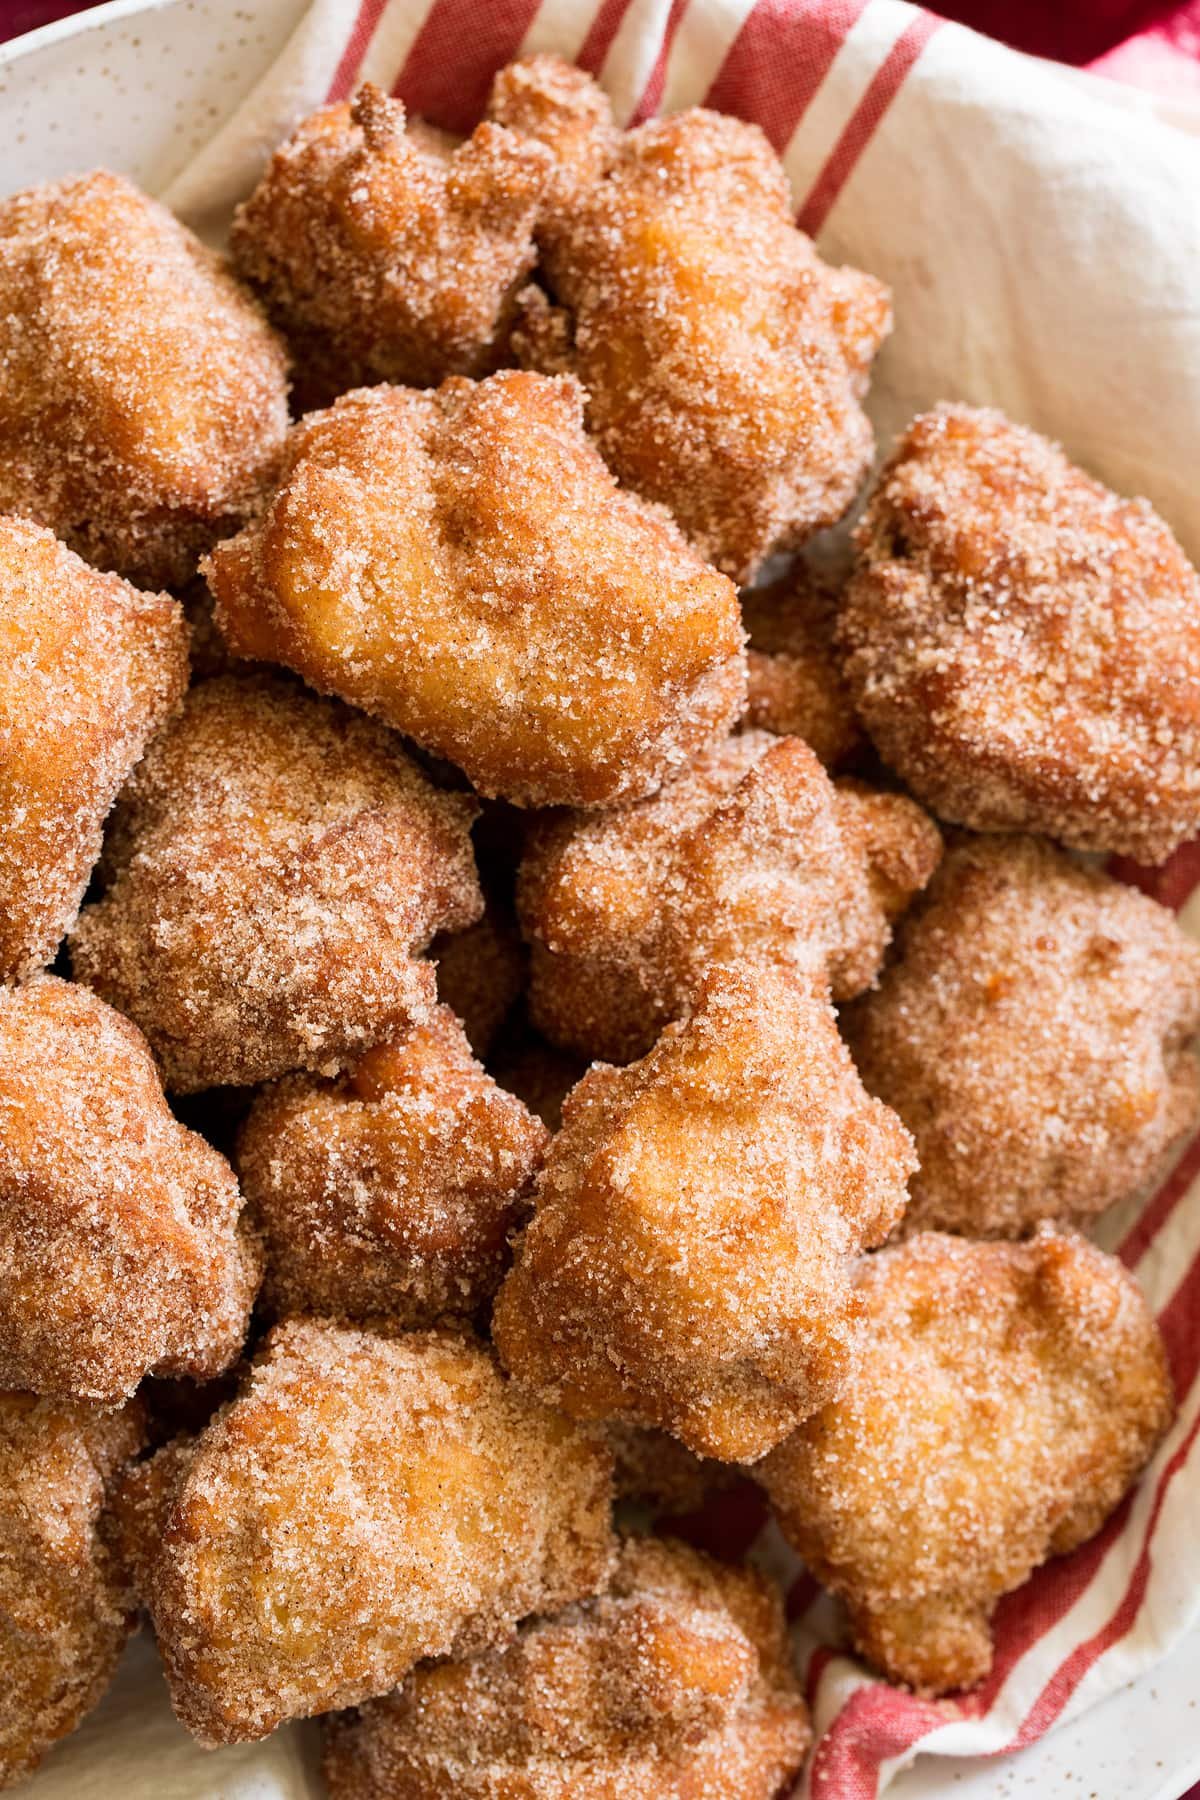 Close up image of apple fritters coated in cinnamon sugar.